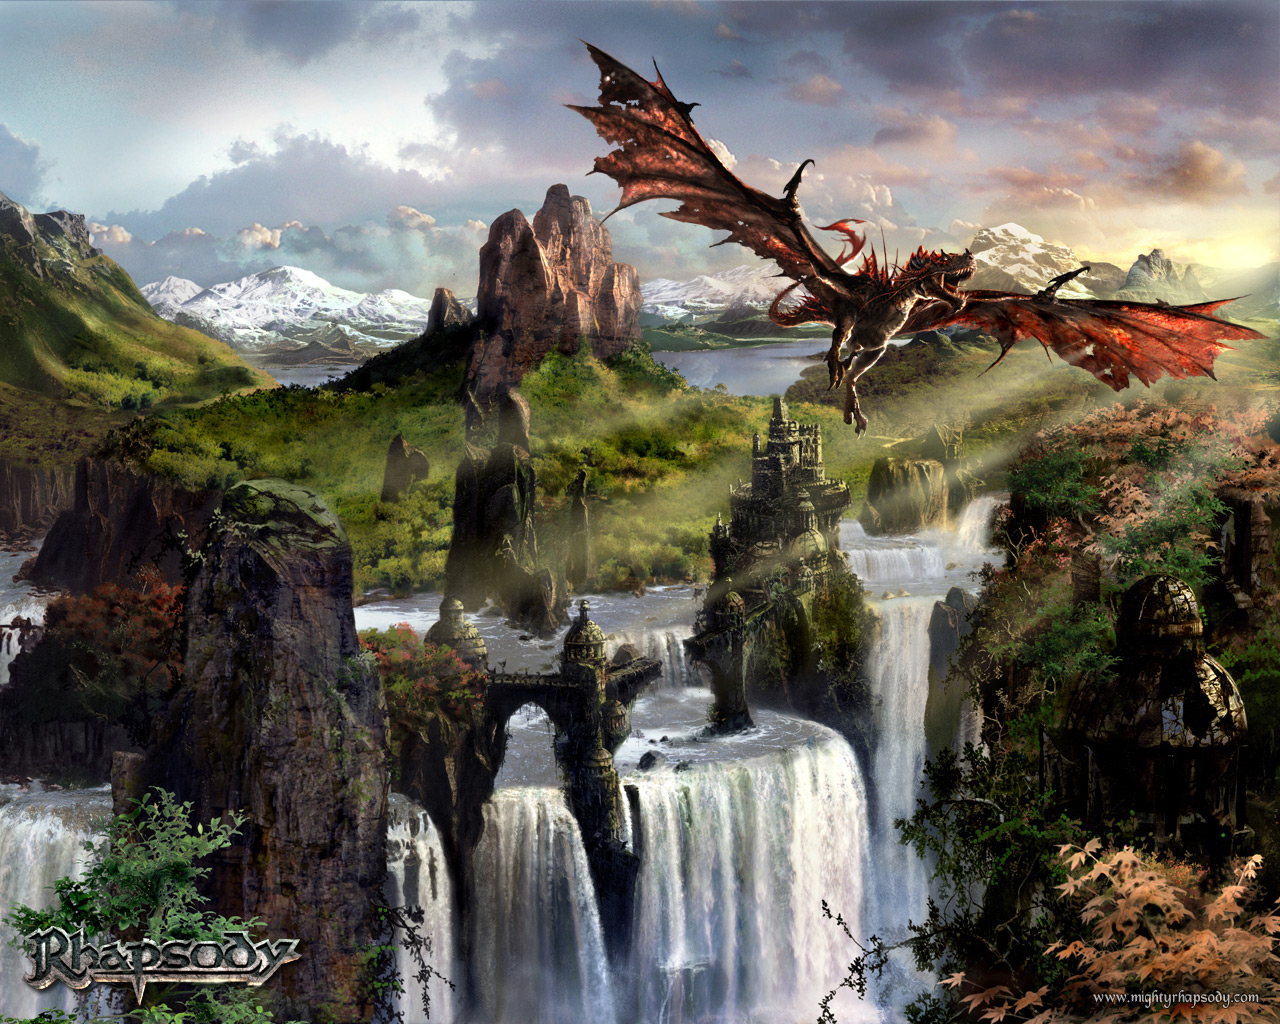 Cool Wallpaper Mountain Dragon - fantasy-dragon-wallpaper-1  HD_727755.jpeg